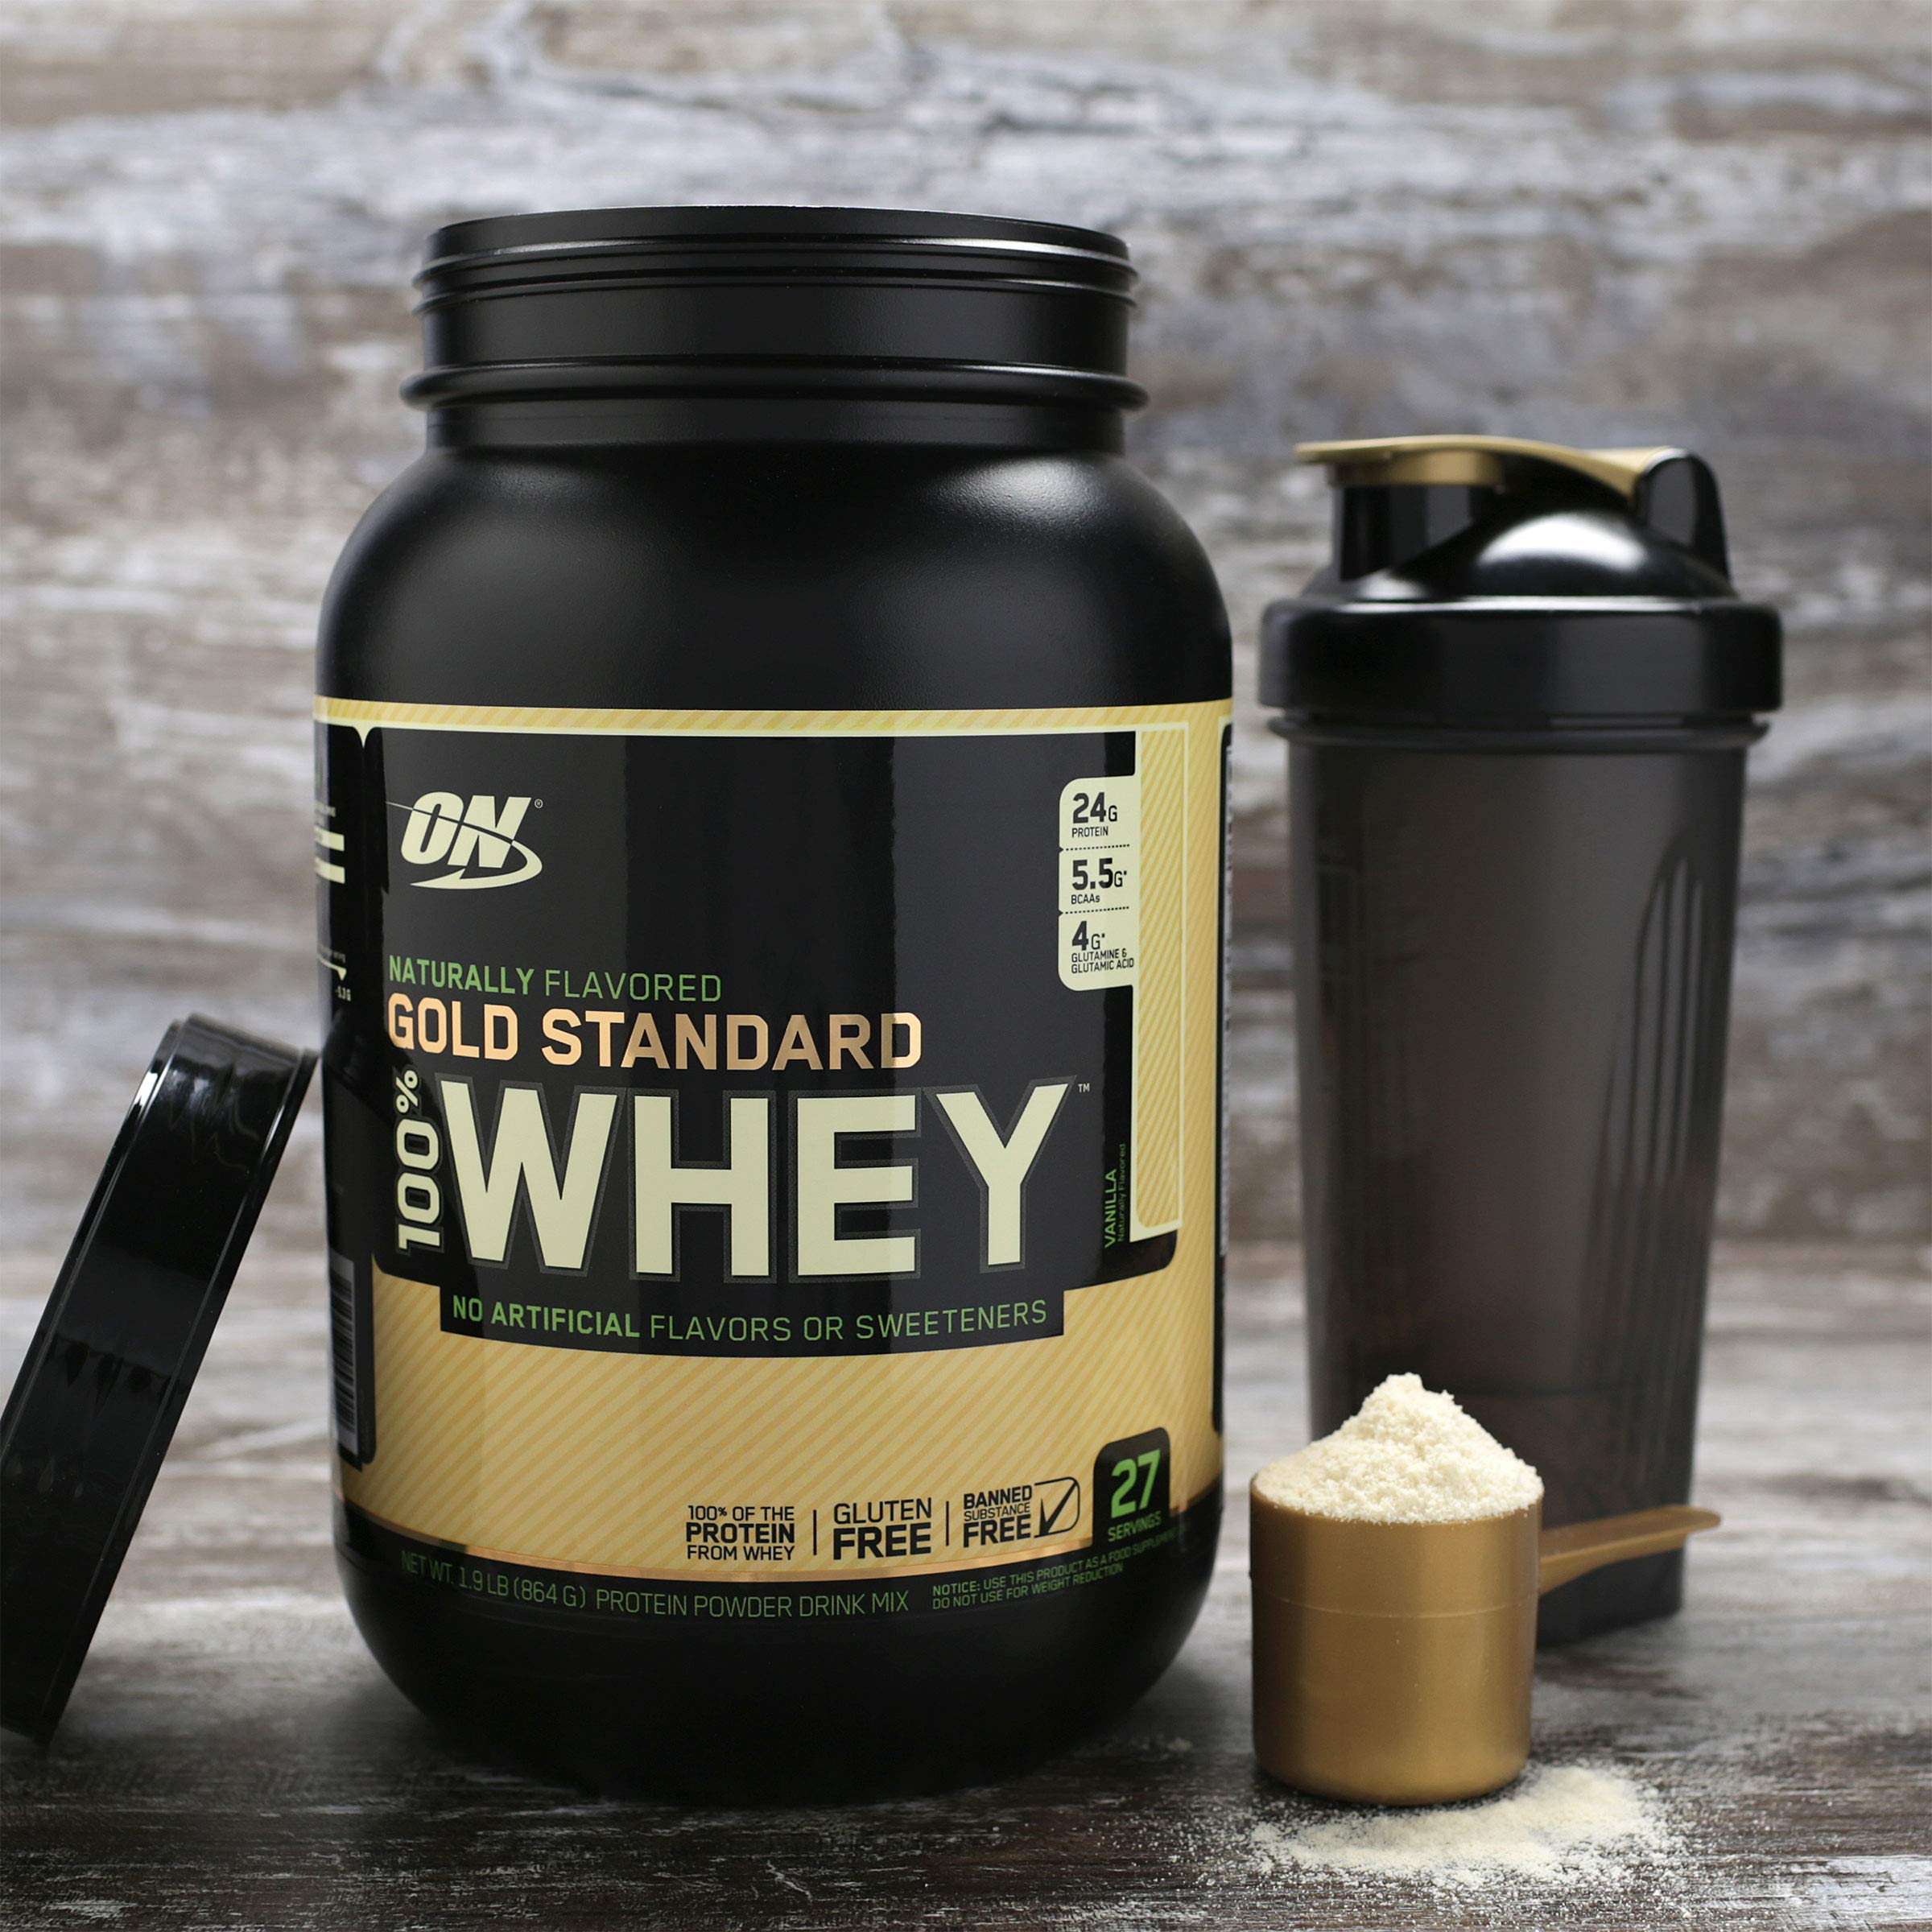 OPTIMUM NUTRITION GOLD STANDARD 100% Whey Protein Powder, Naturally Flavored, 4.8 Pound by Optimum Nutrition (Image #5)